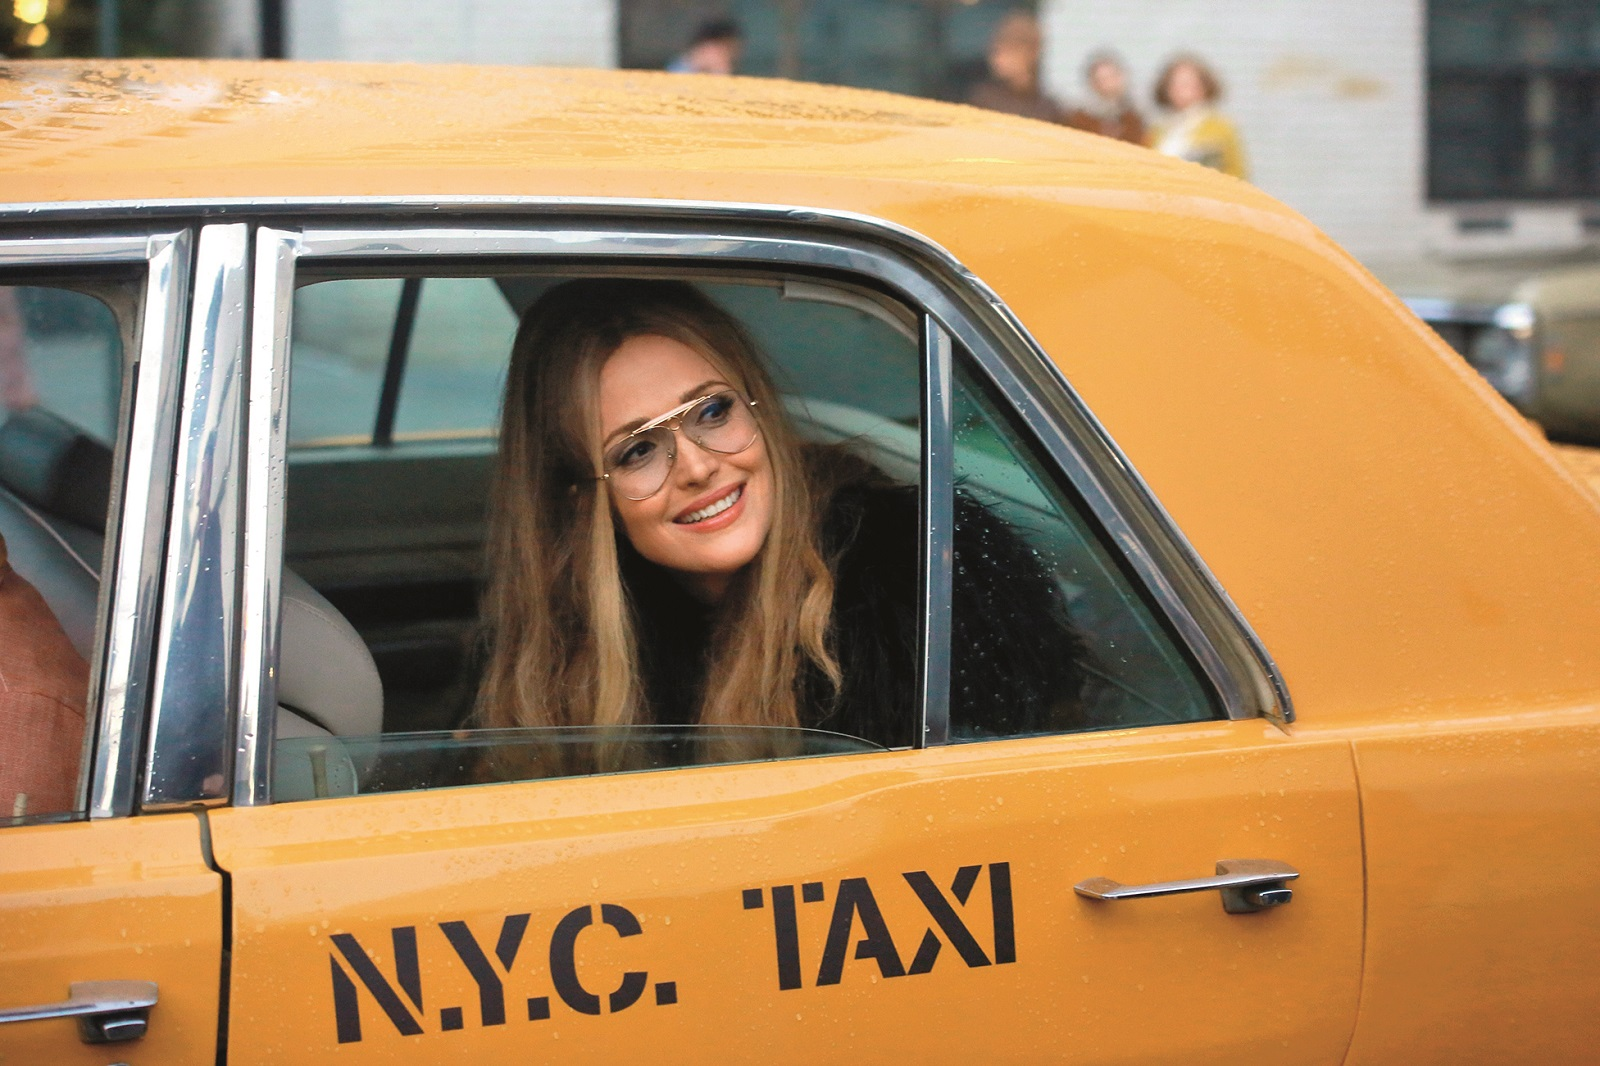 Rose Byrne plays 70's feminist icon, Gloria Steinem on the set of Mrs. America, shooting in New York City. The 40 year-old Australian actress is acting in a scene alongside actor, Jay Ellis. 27 Oct 2019,Image: 479416103, License: Rights-managed, Restrictions: World Rights, Model Release: no, Credit line: SteveSands/NewYorkNewswire/MEGA / The Mega Agency / Profimedia